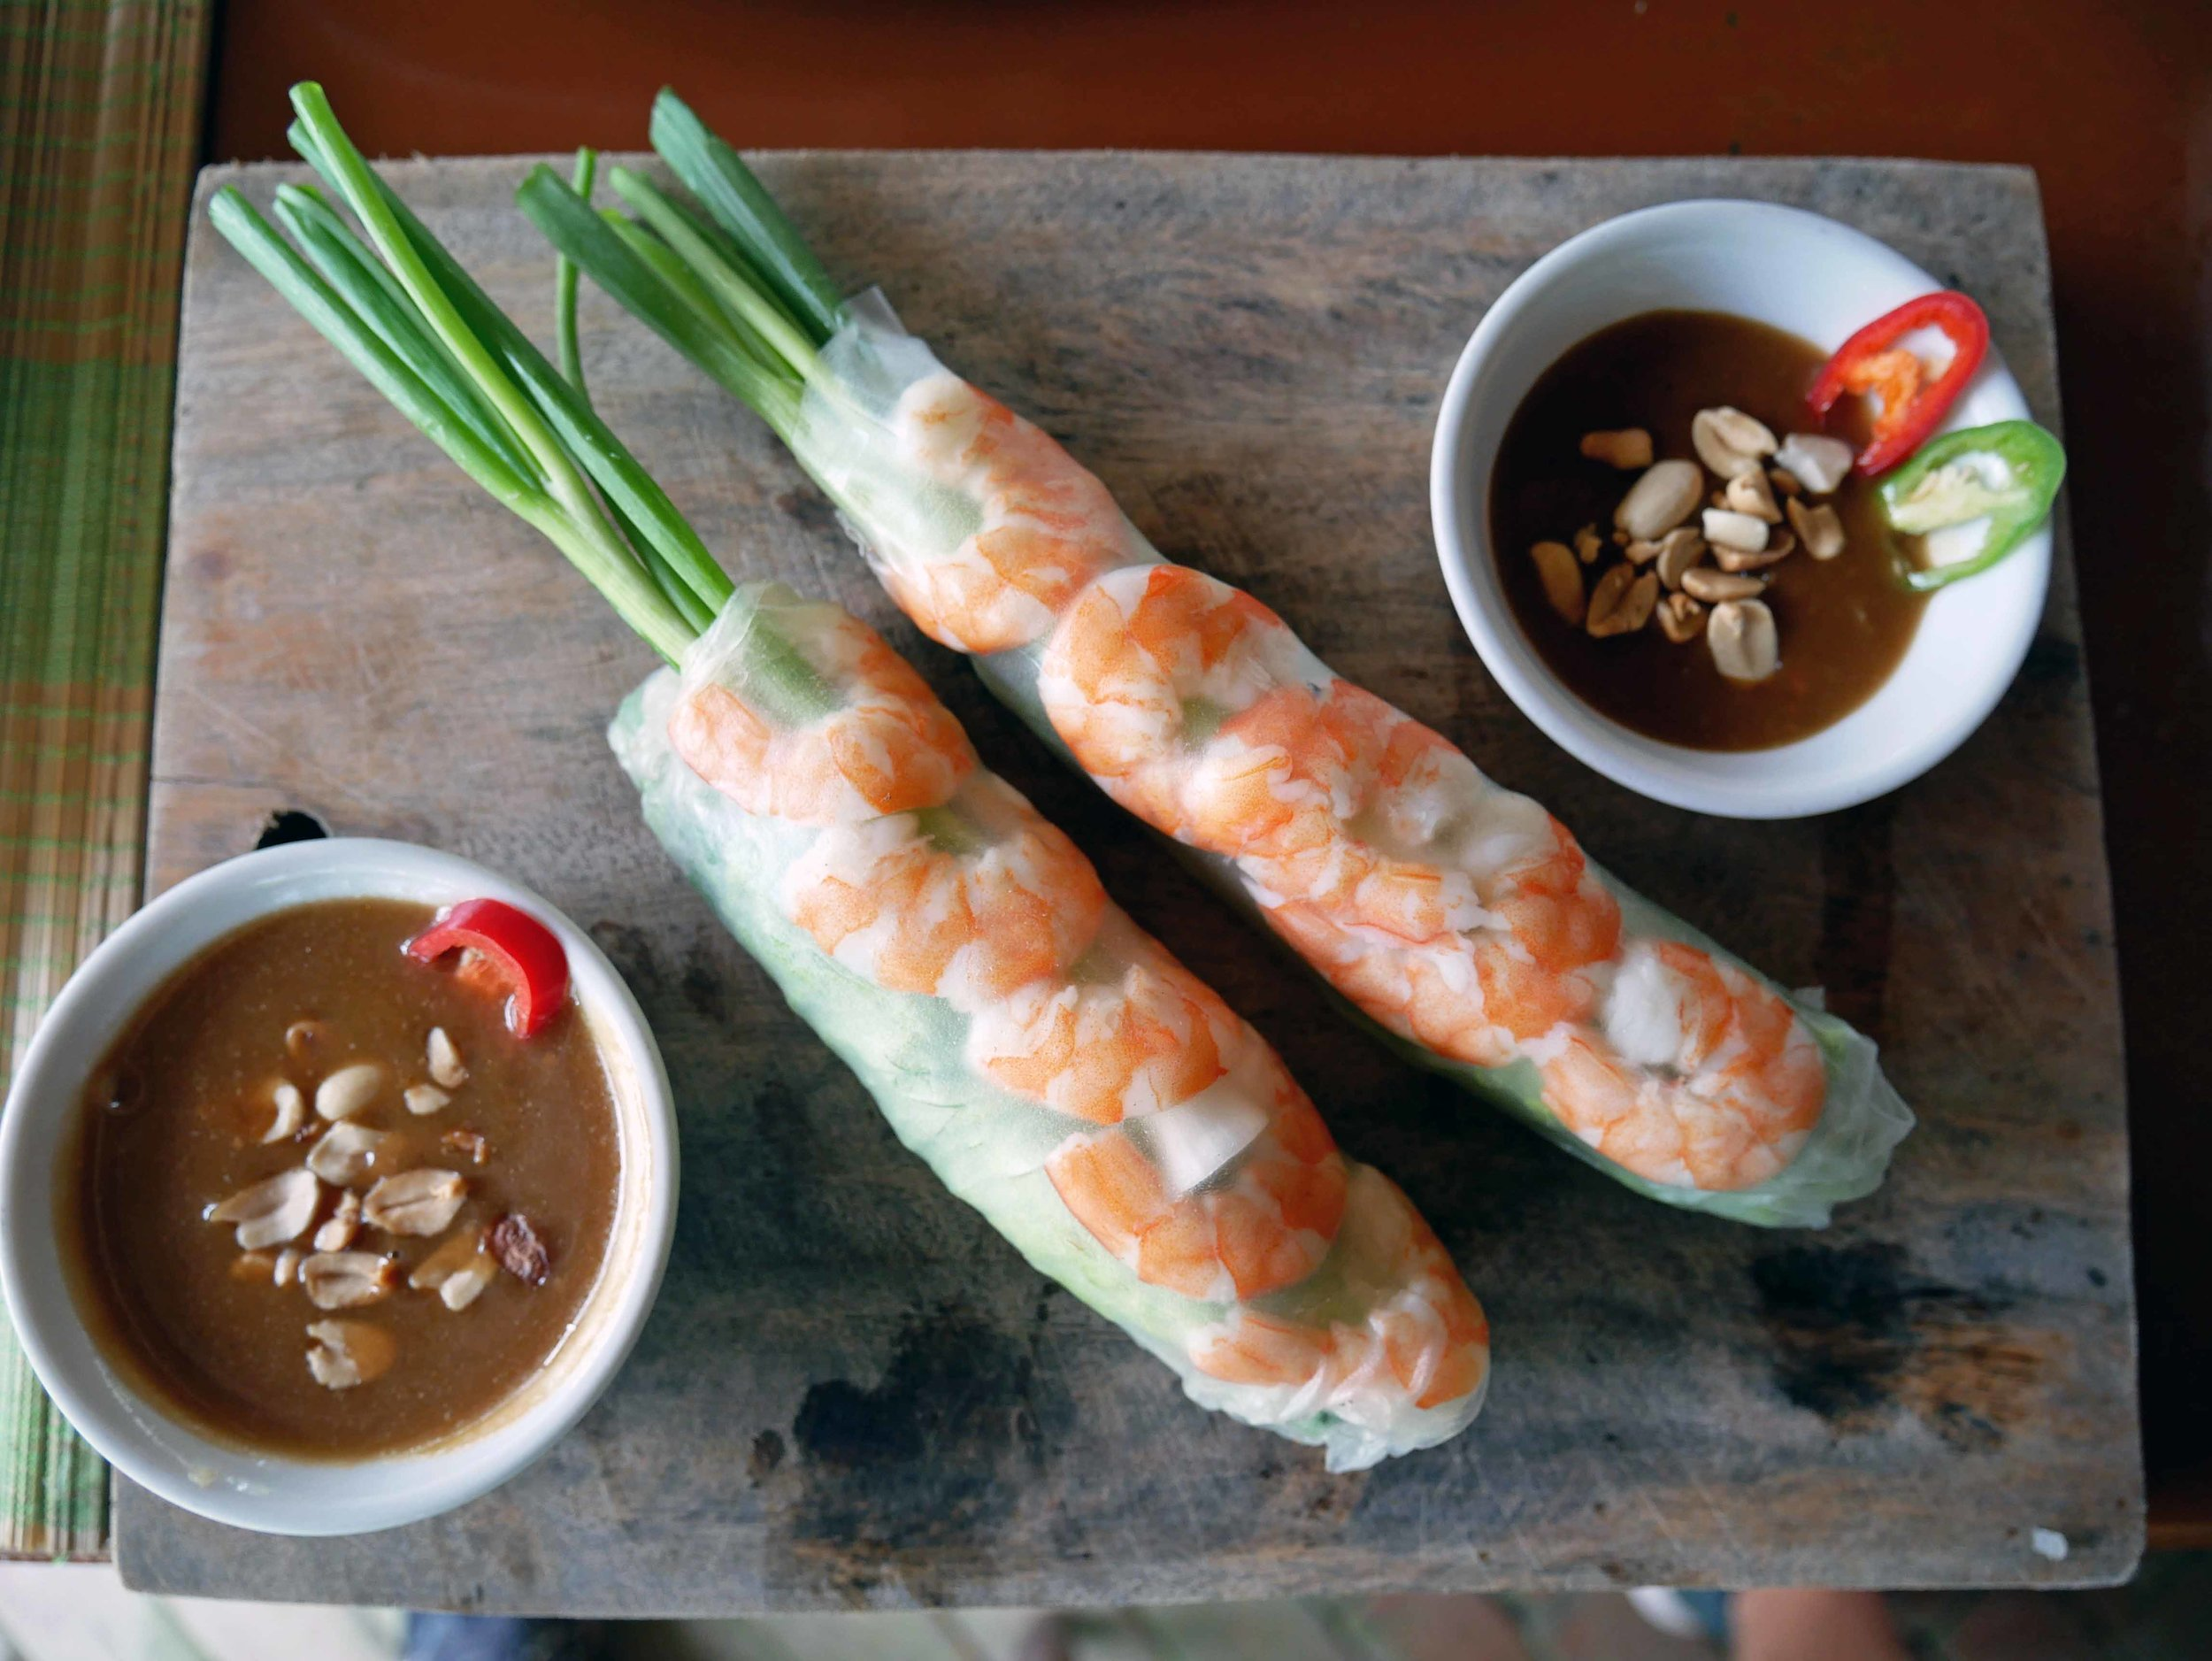 Once the Pho broth was on, we made an appetizer of fresh spring rolls with pork and shrimp.